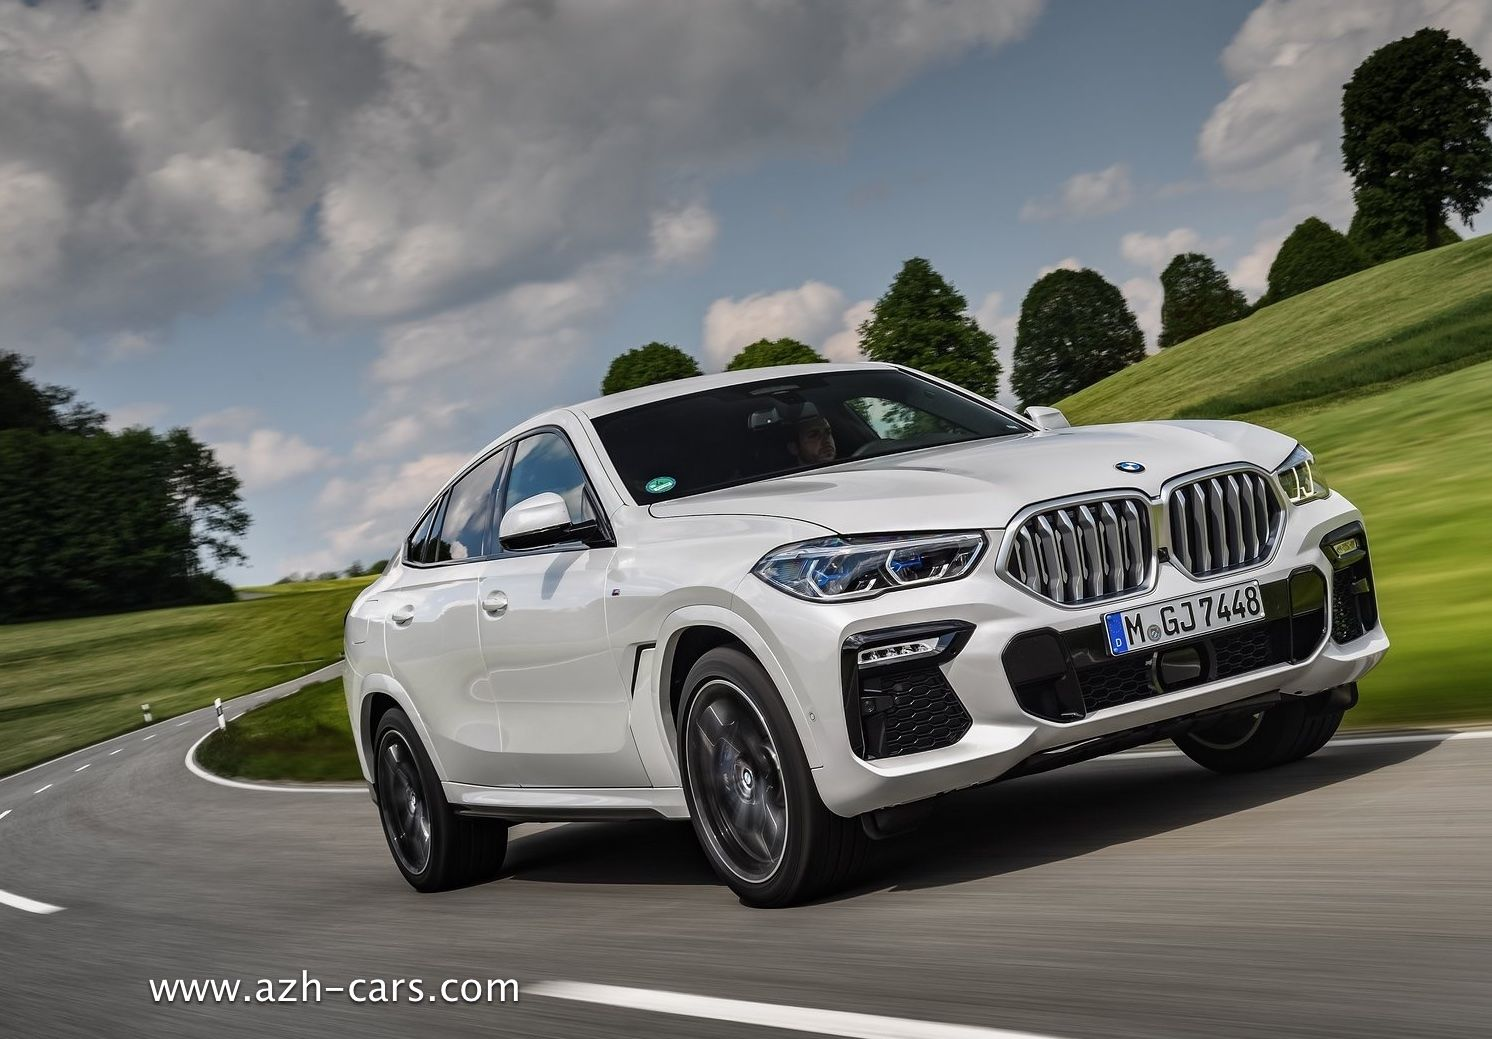 Bmw X6 M50i Price In India 2020 And Launch Date In 2020 Bmw X6 Bmw Luxury Suv